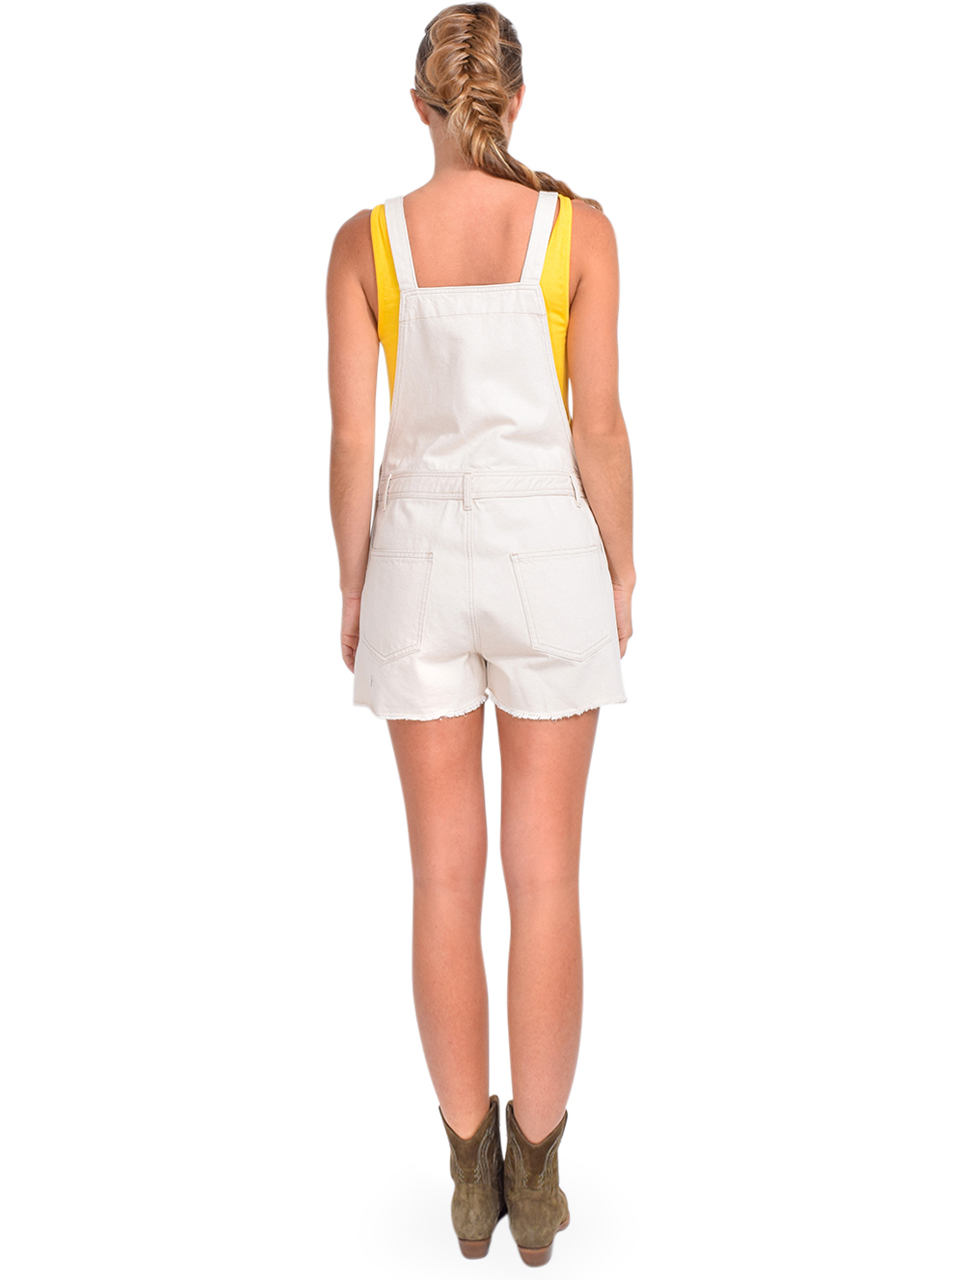 Bellerose Pachita Overall Shorts in Natural Back View